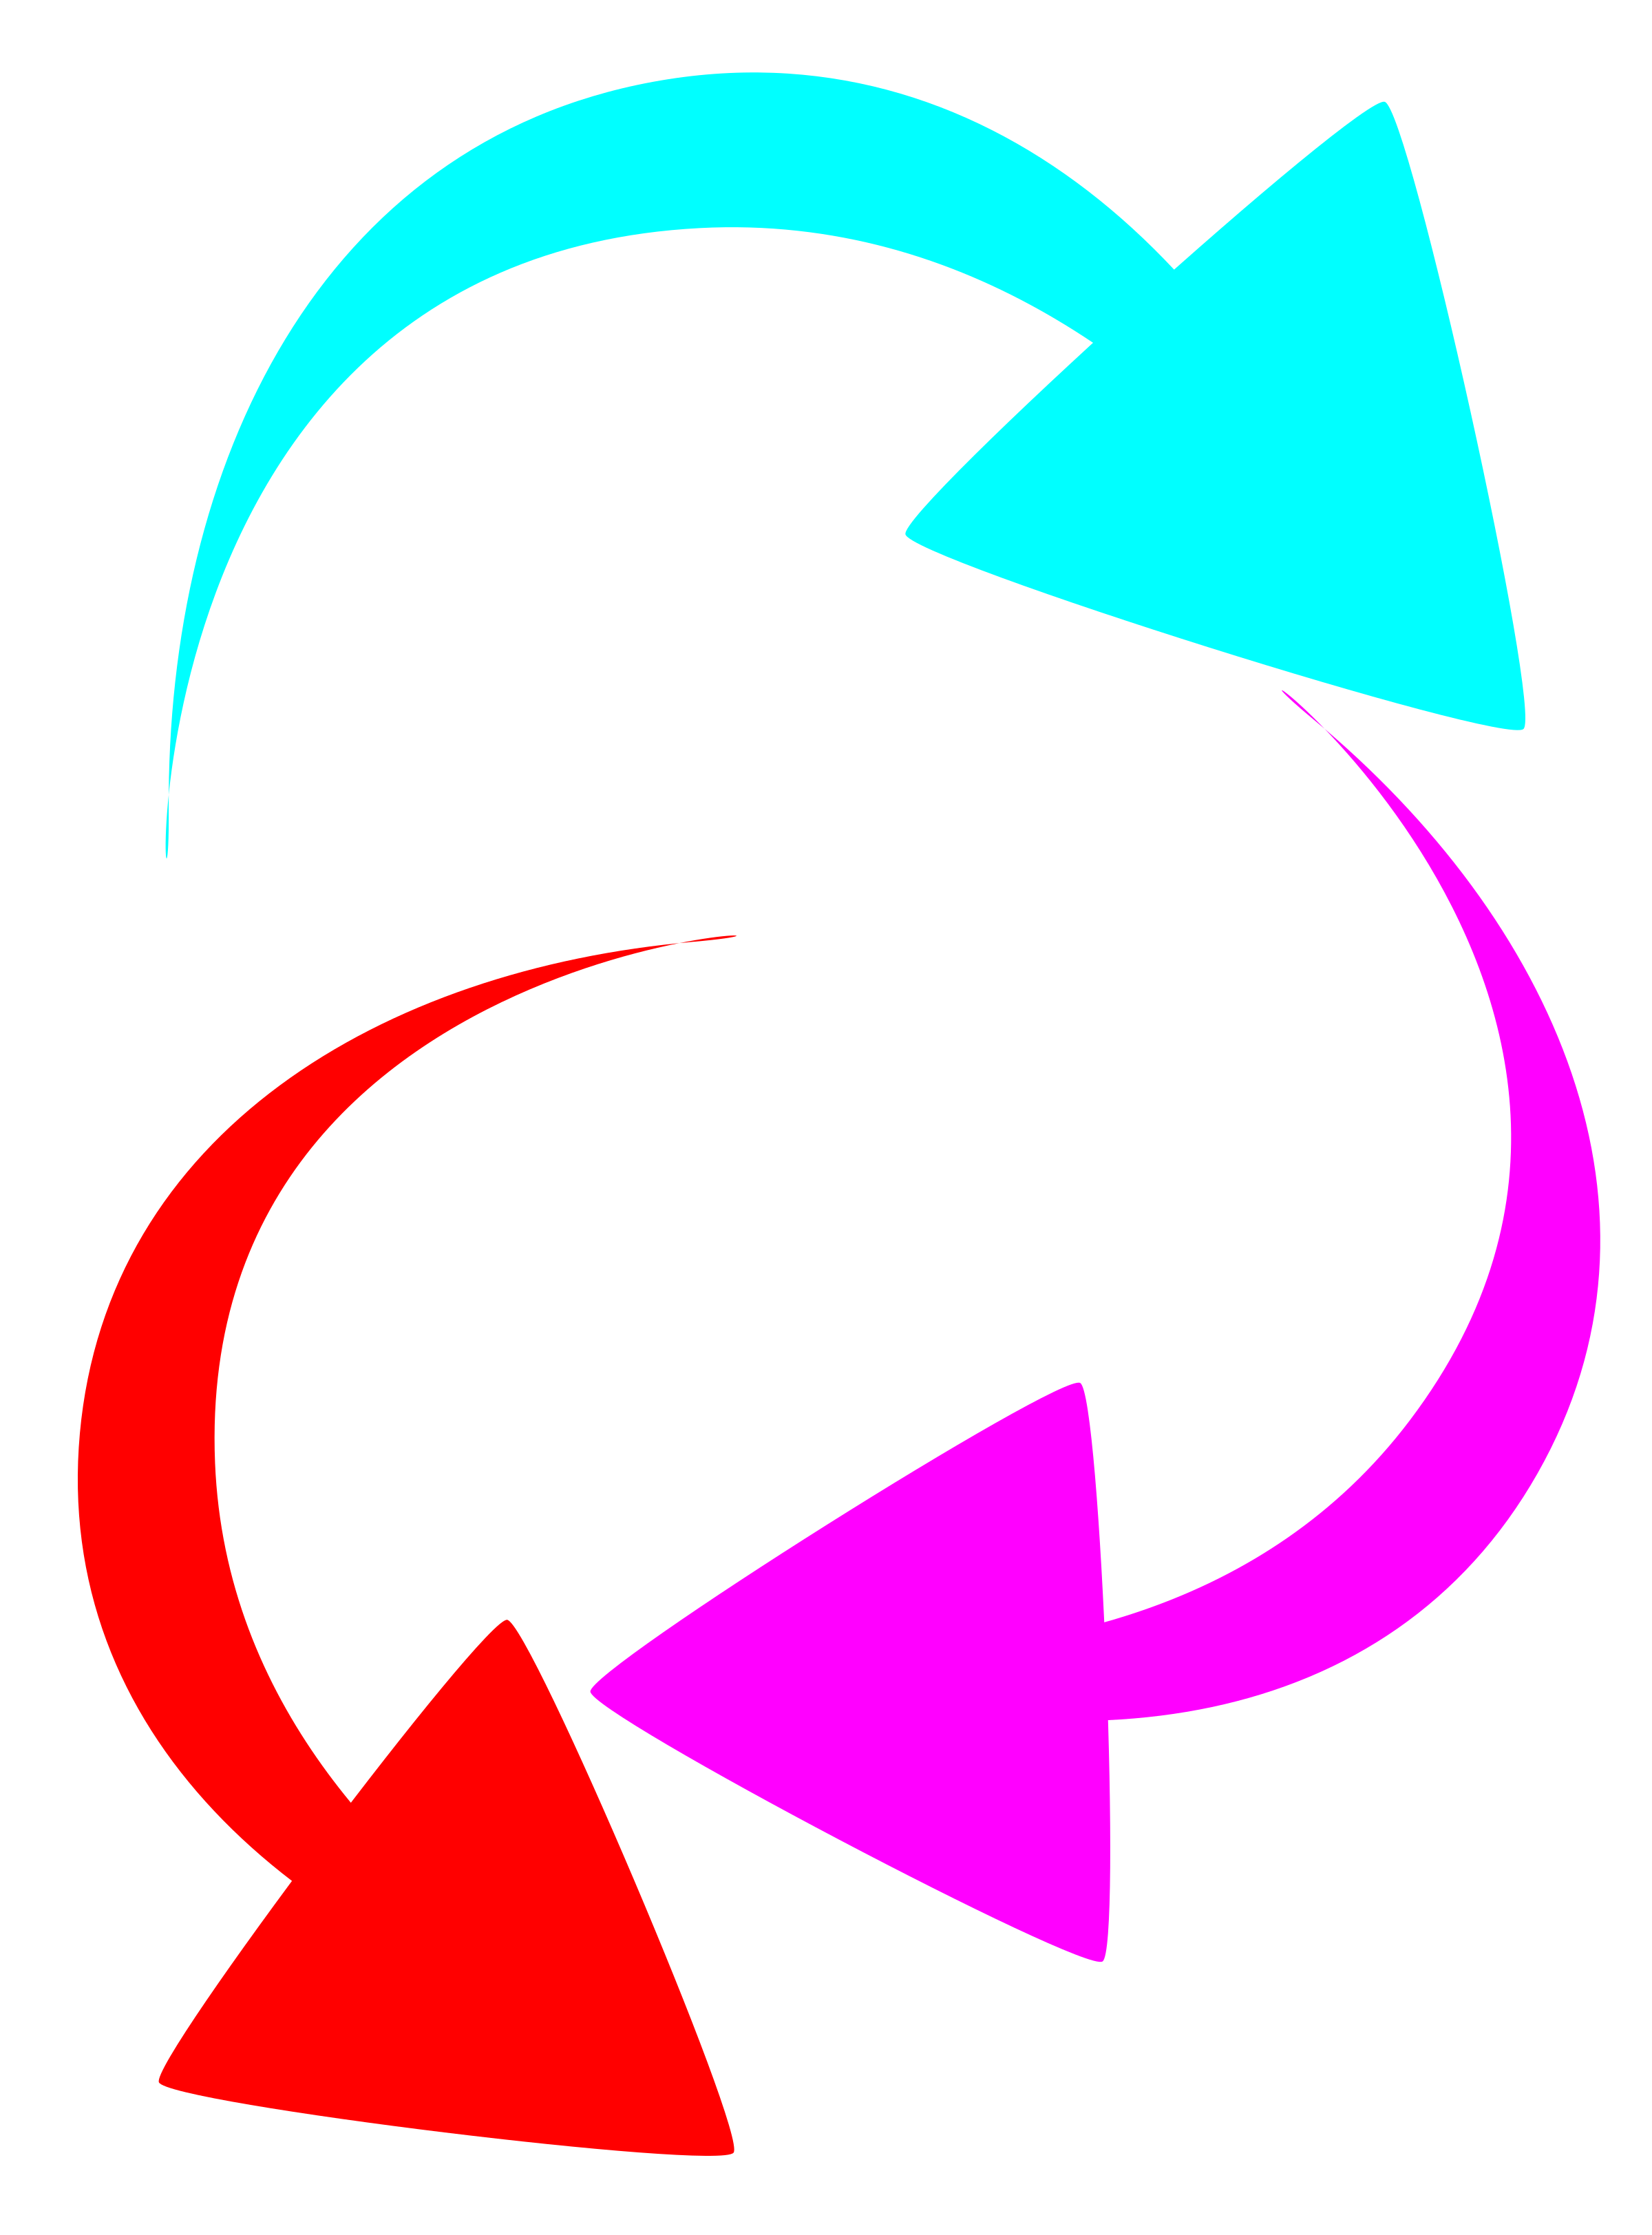 Color arrows big image. Arrow tha is curved clipart